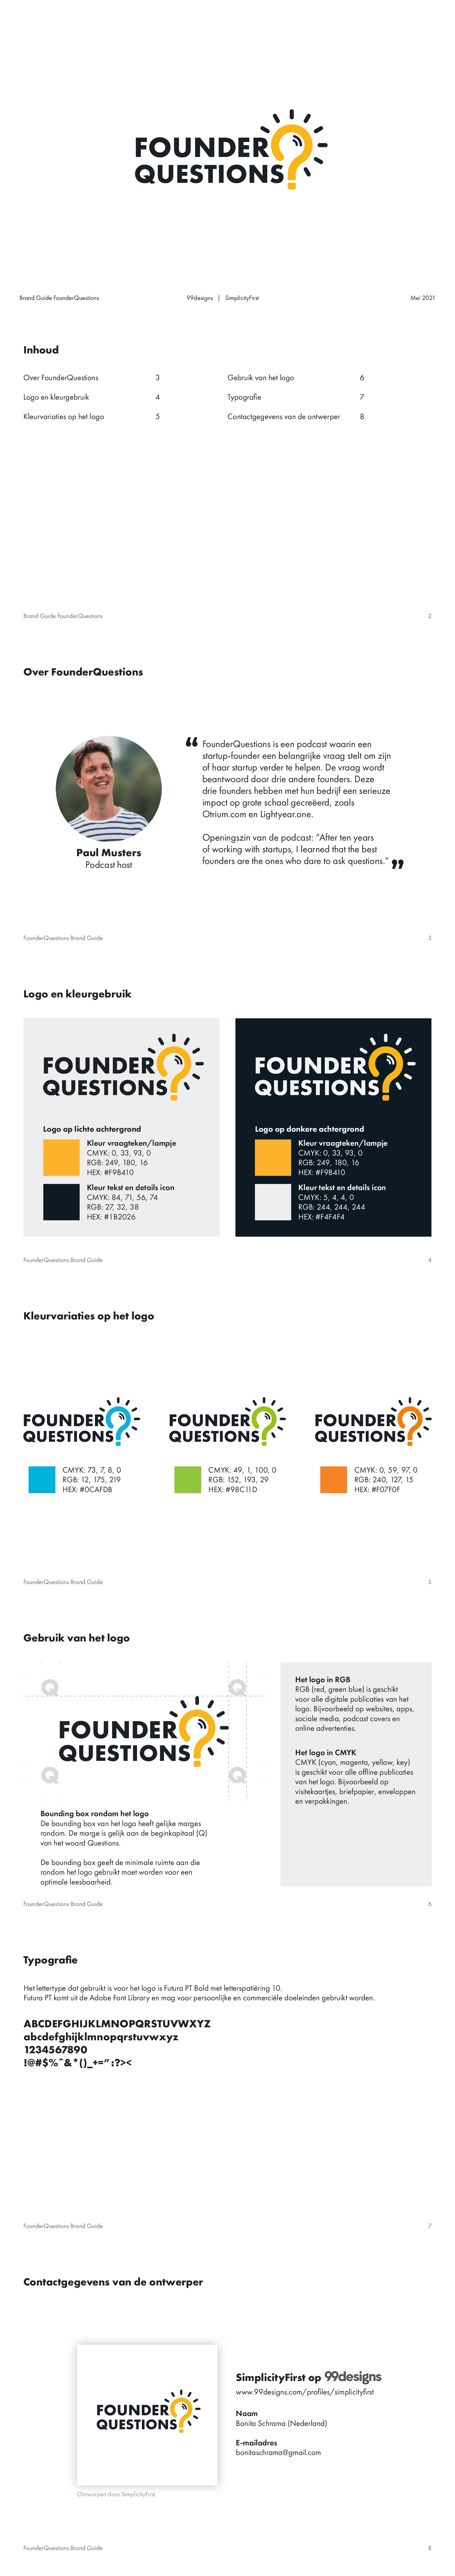 Create a logo for *FounderQuestions* - The Start of an Impactful Podcast Brand